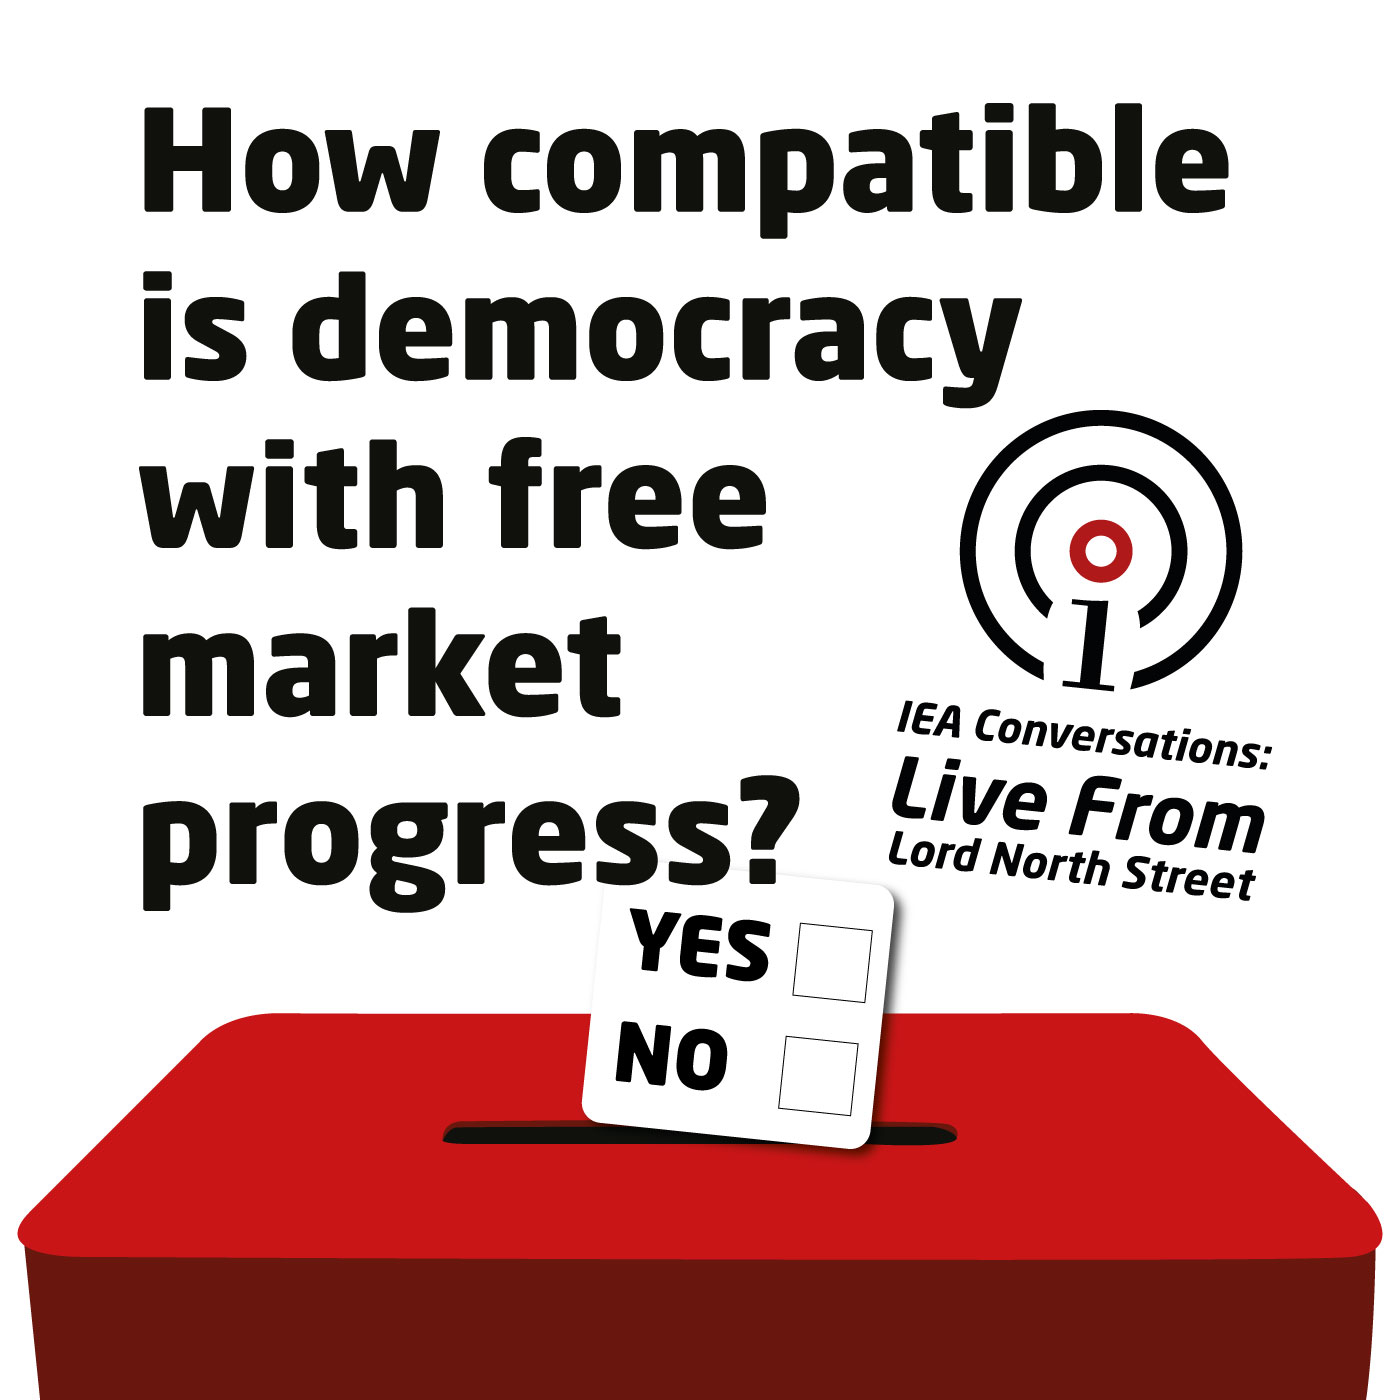 How compatible is democracy with free market progress?